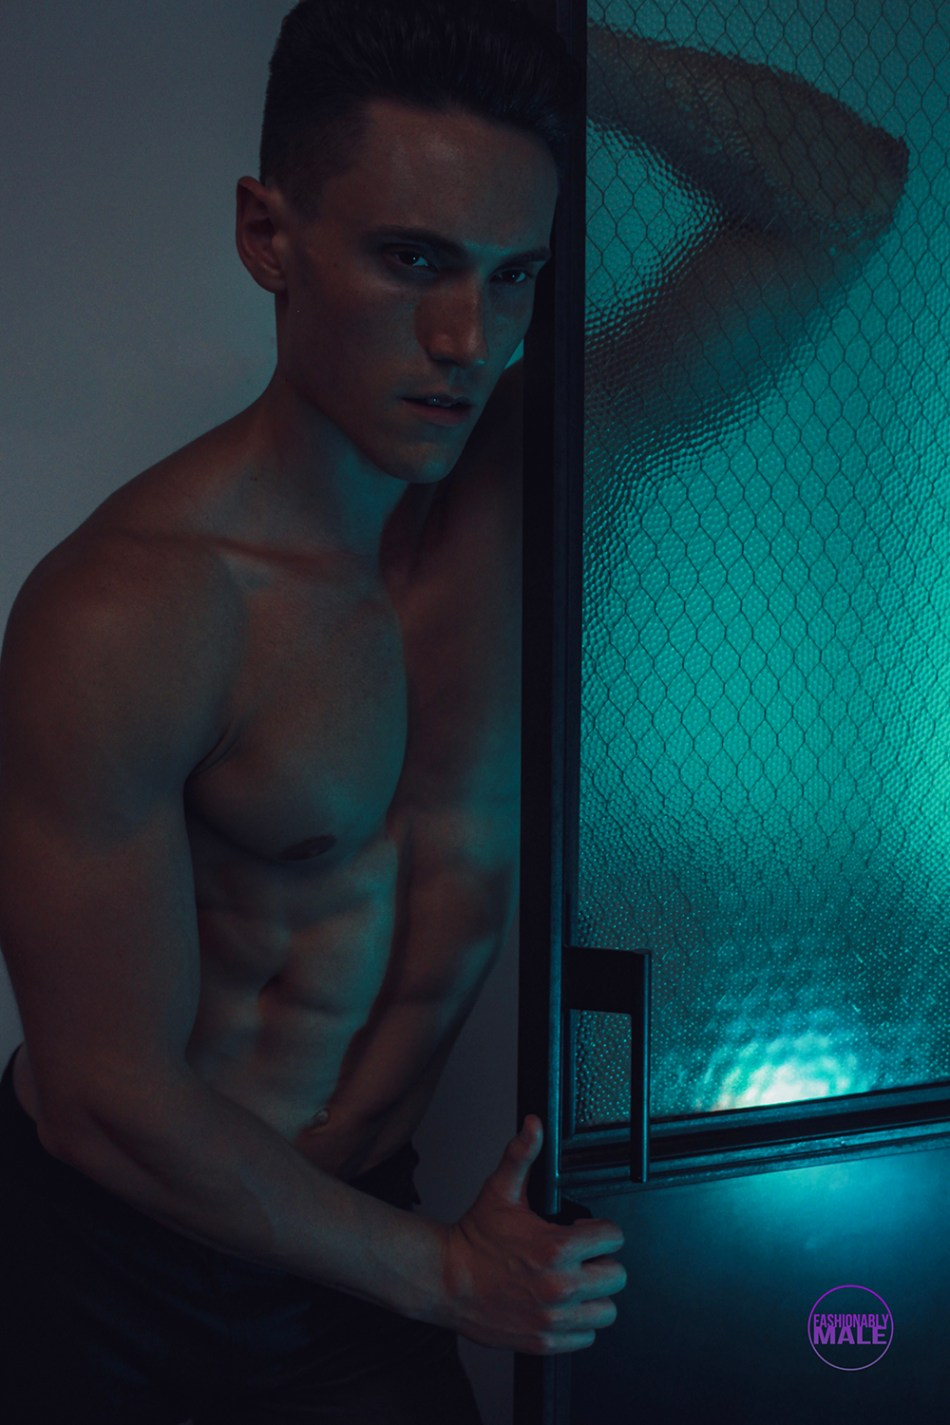 Let's Talk About HOMME Town Studio by Frank Carrasquillo